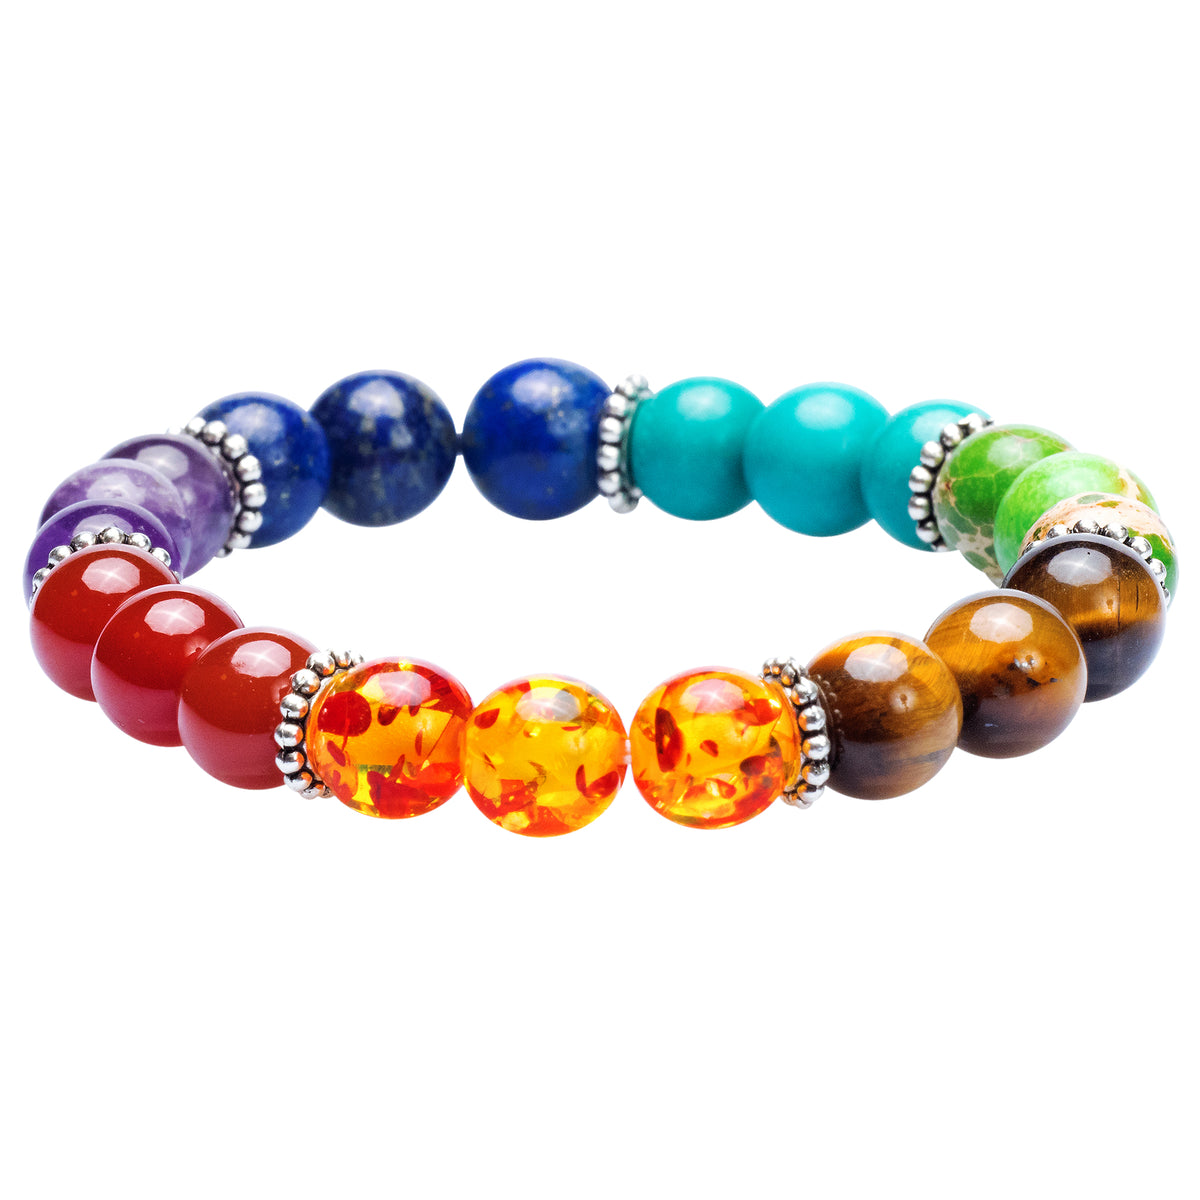 NEW! Women's 7-Chakra Healing Bracelet with Authentic Stones - 7in